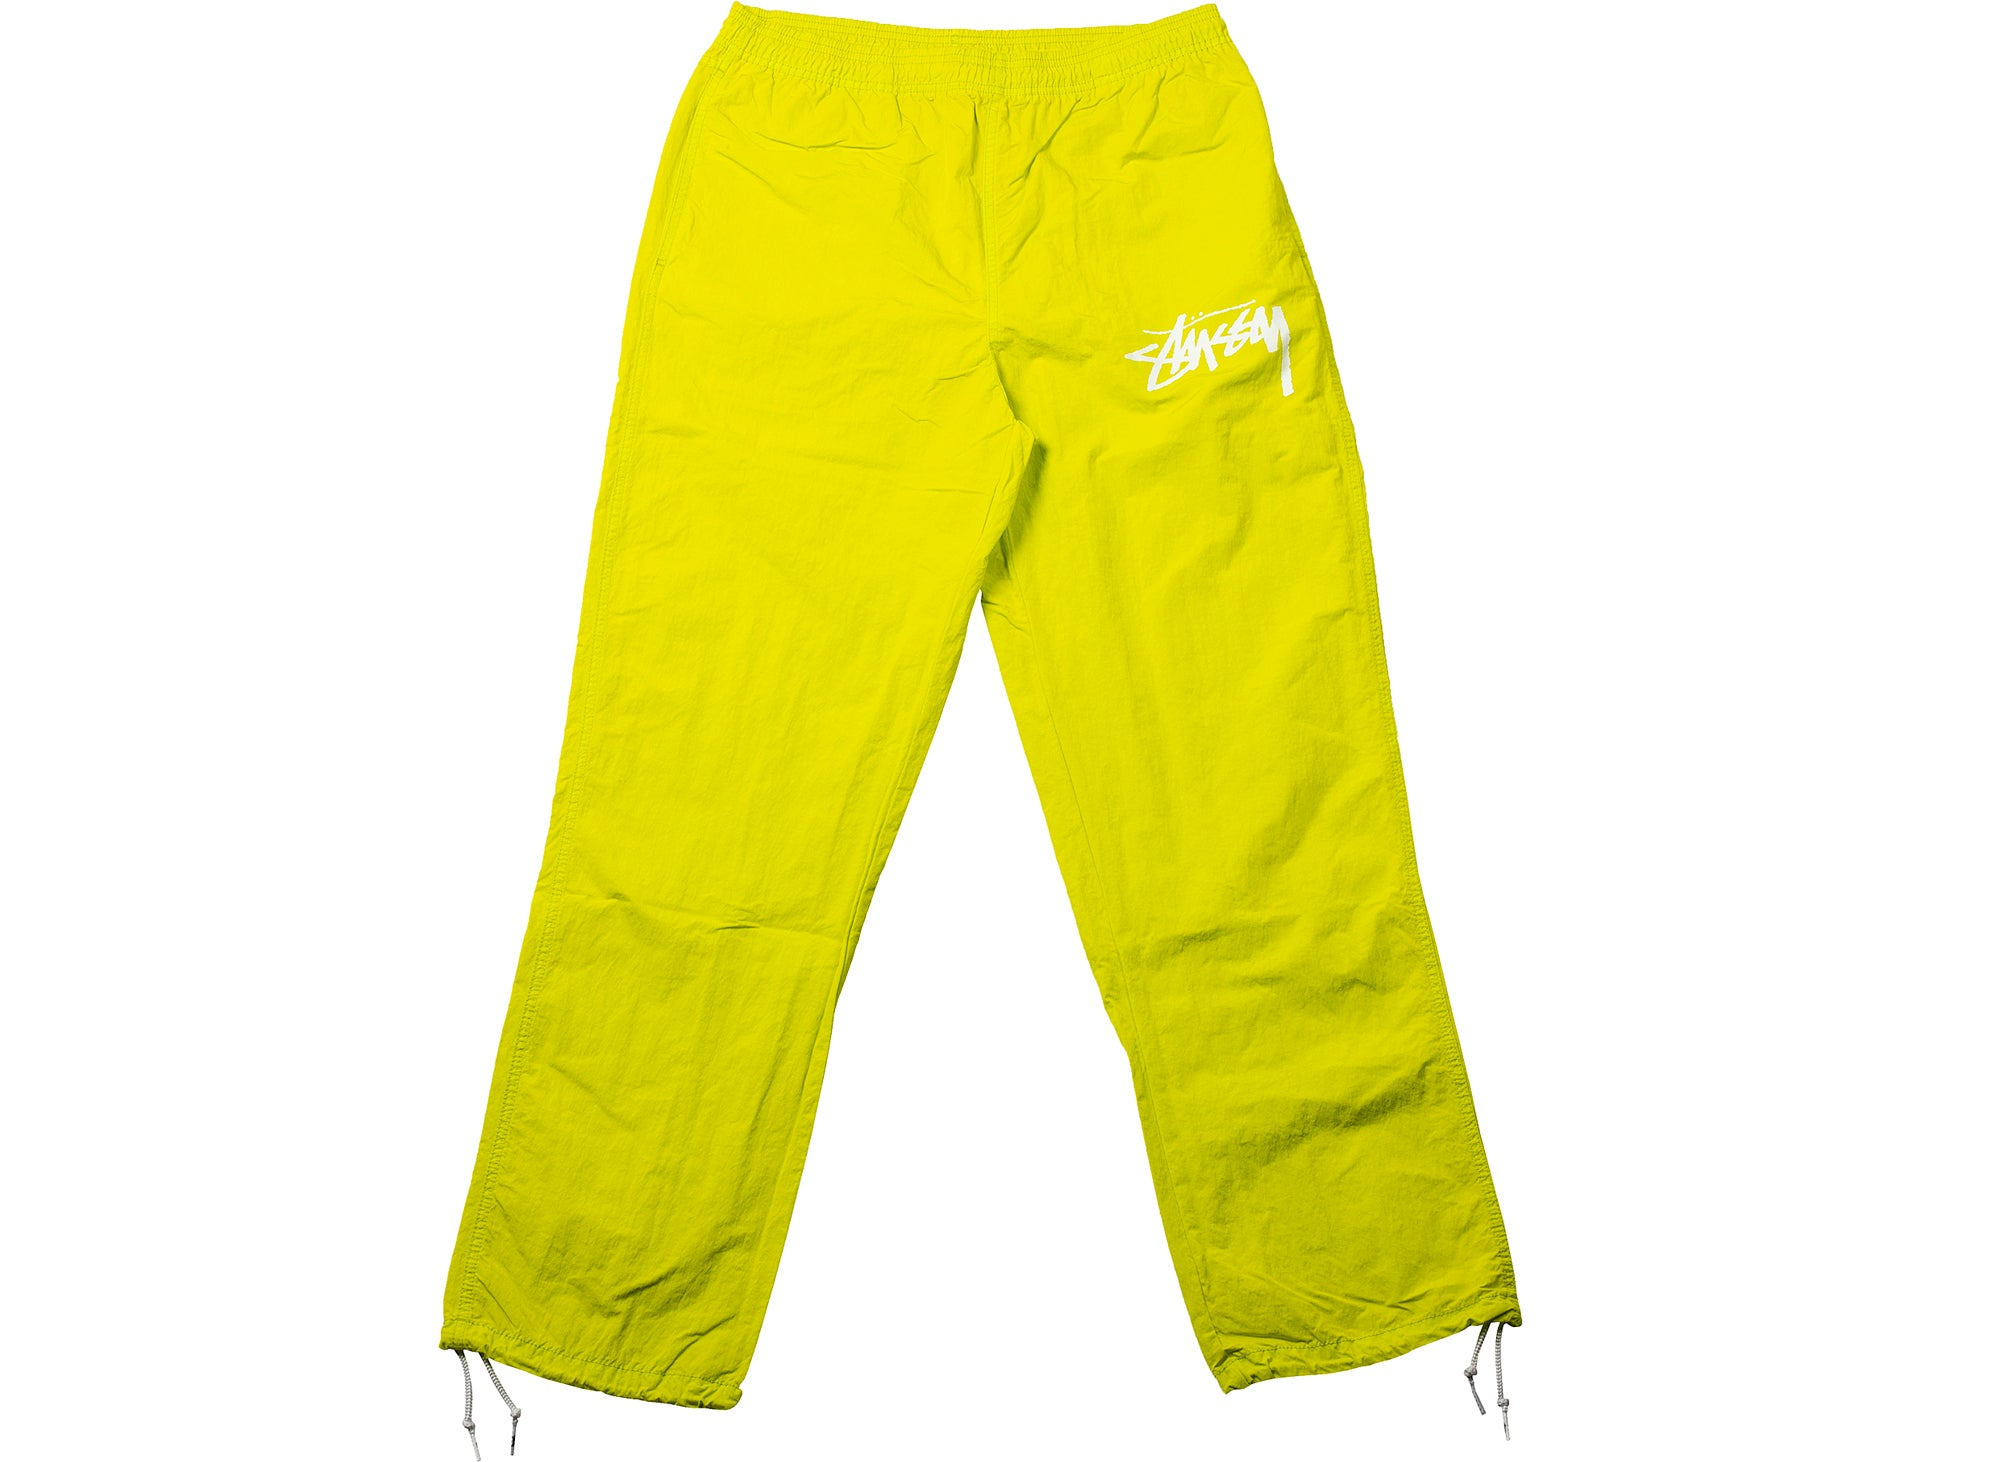 Nike x Stüssy Beach Pants in Lime xld